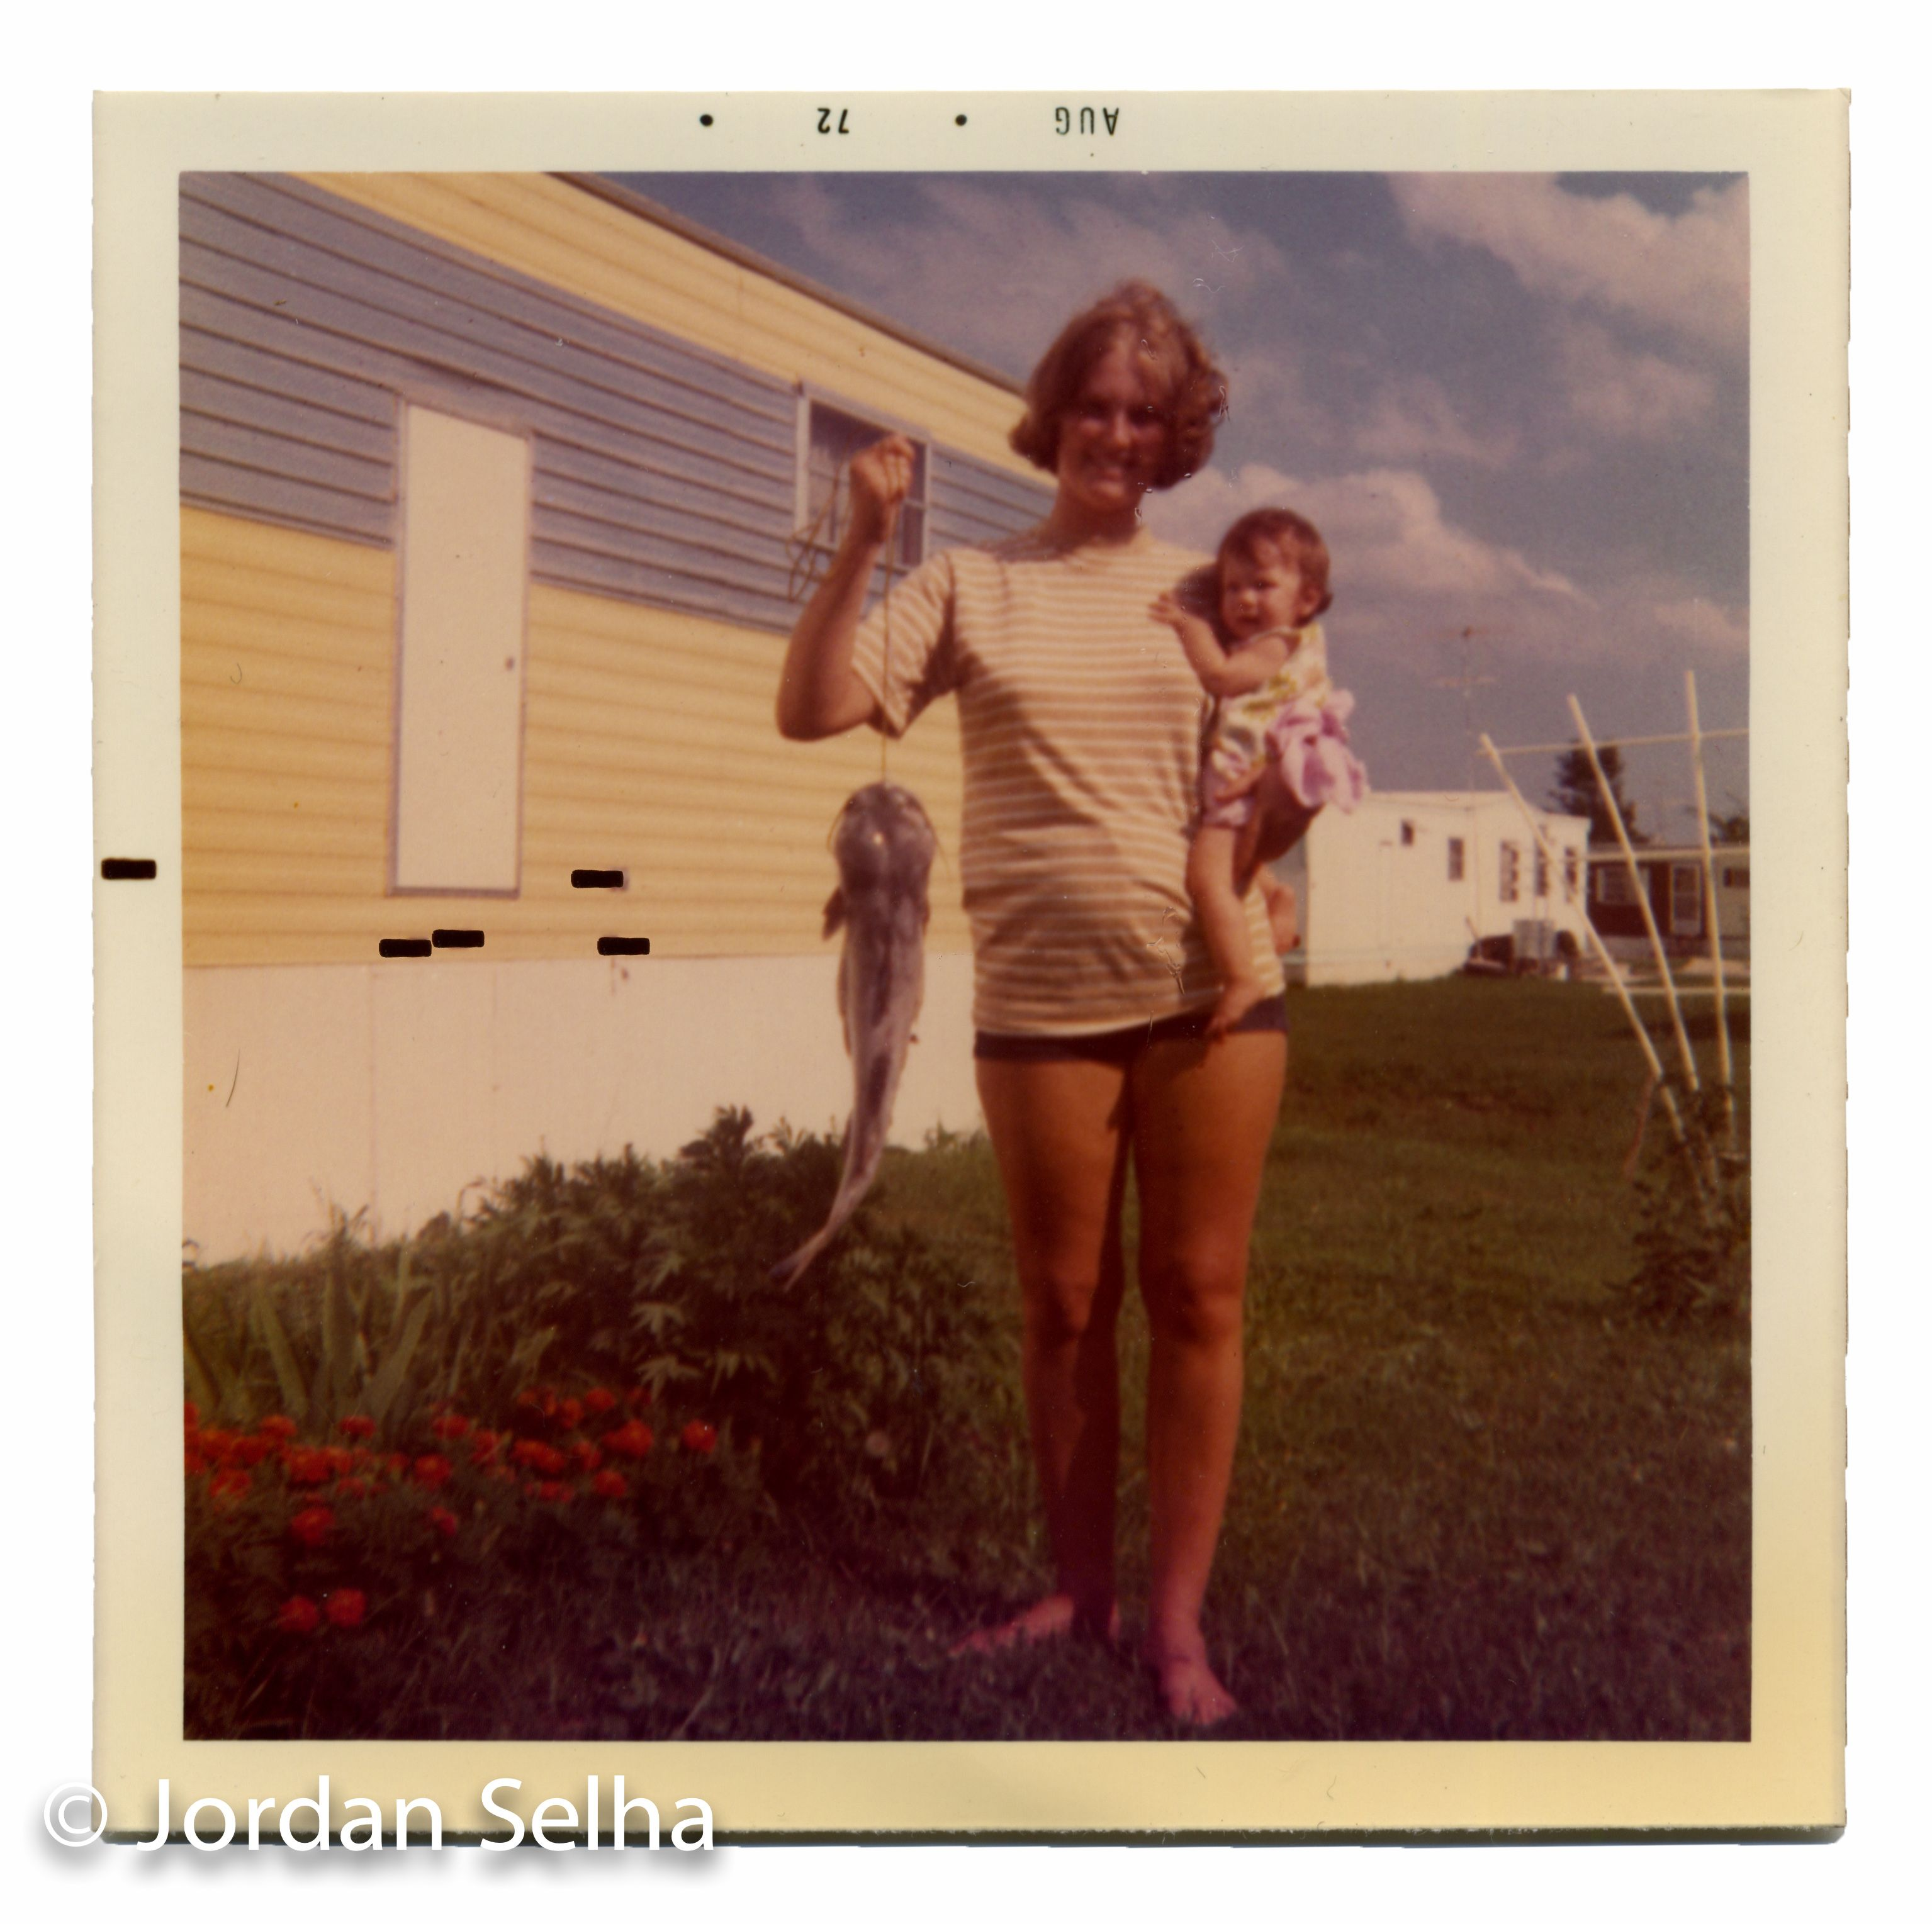 Nostalgia, 1973.  Polaroid of my mom with catfish.  1970s feminism, strength, balance.  Manufactured homes, architecture, trailer park culture.